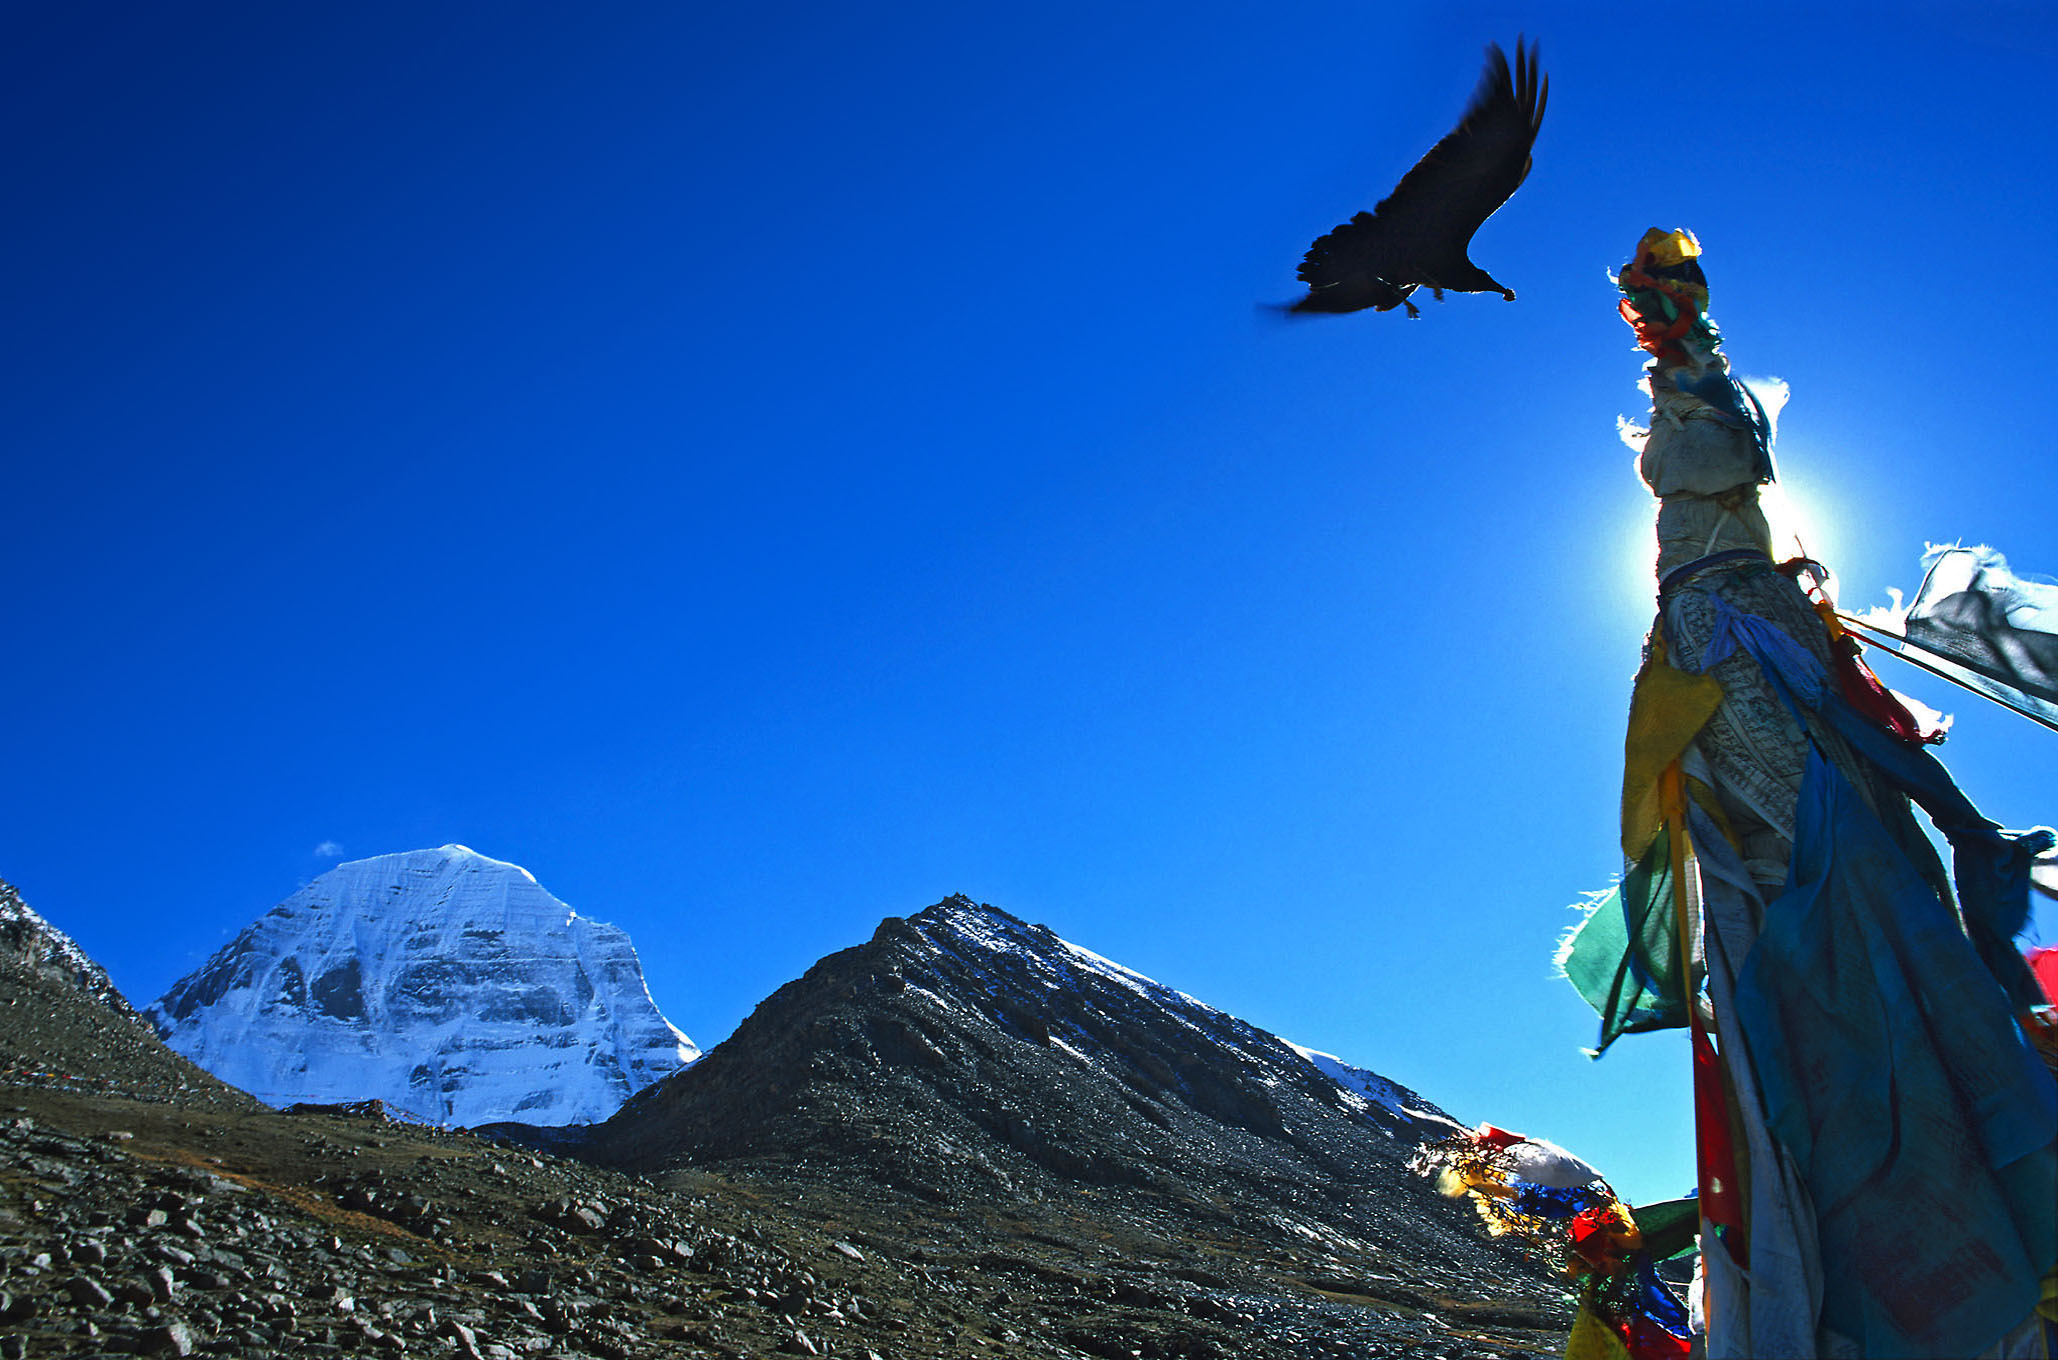 Socrates Geens, Mount Kailash north face, Tibet